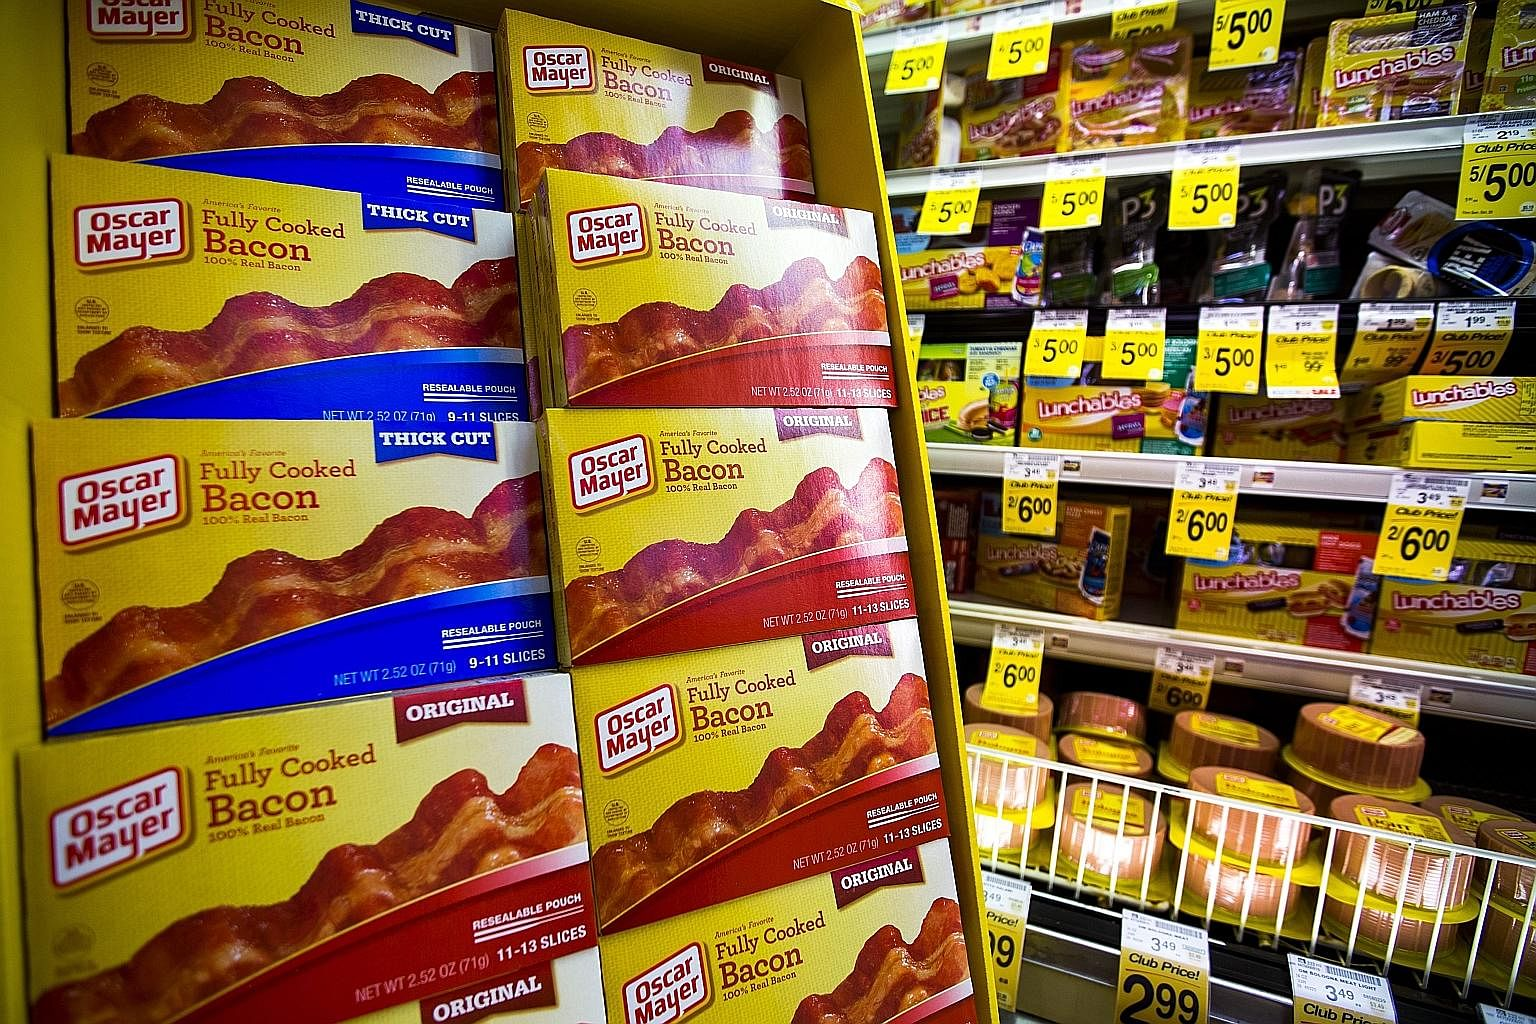 Processed meat in a US grocery store. Any meat with a suspiciously long shelf life is probably not very good for you, but if you're an adult with free will, you may decide to buy it anyway.